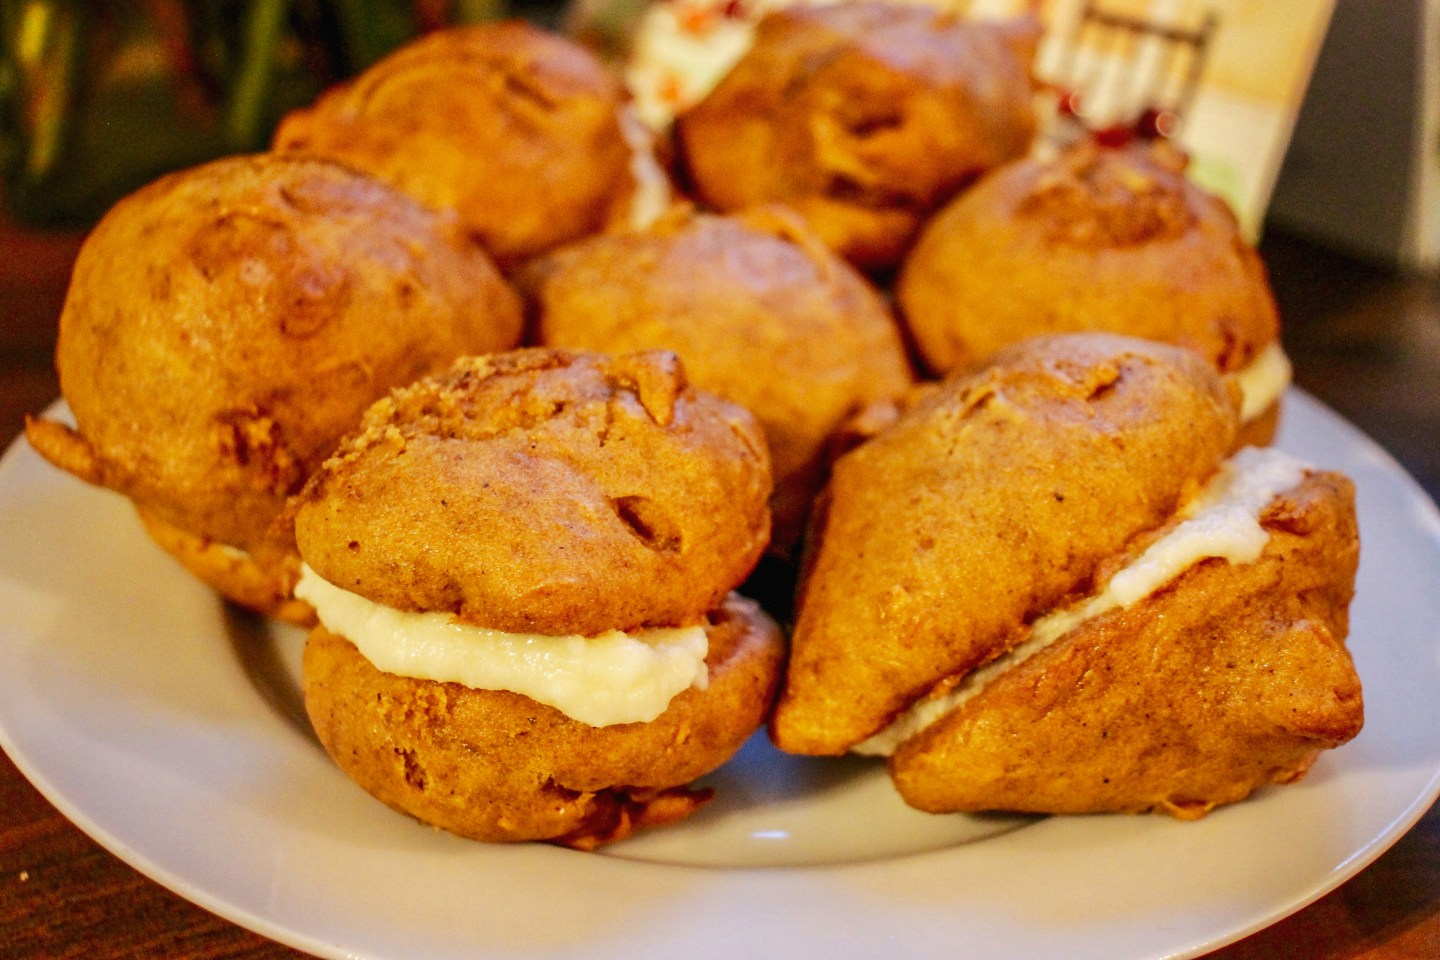 My Mom's Gluten-Free Pumpkin Whoopie Pies and Expat Thanksgiving